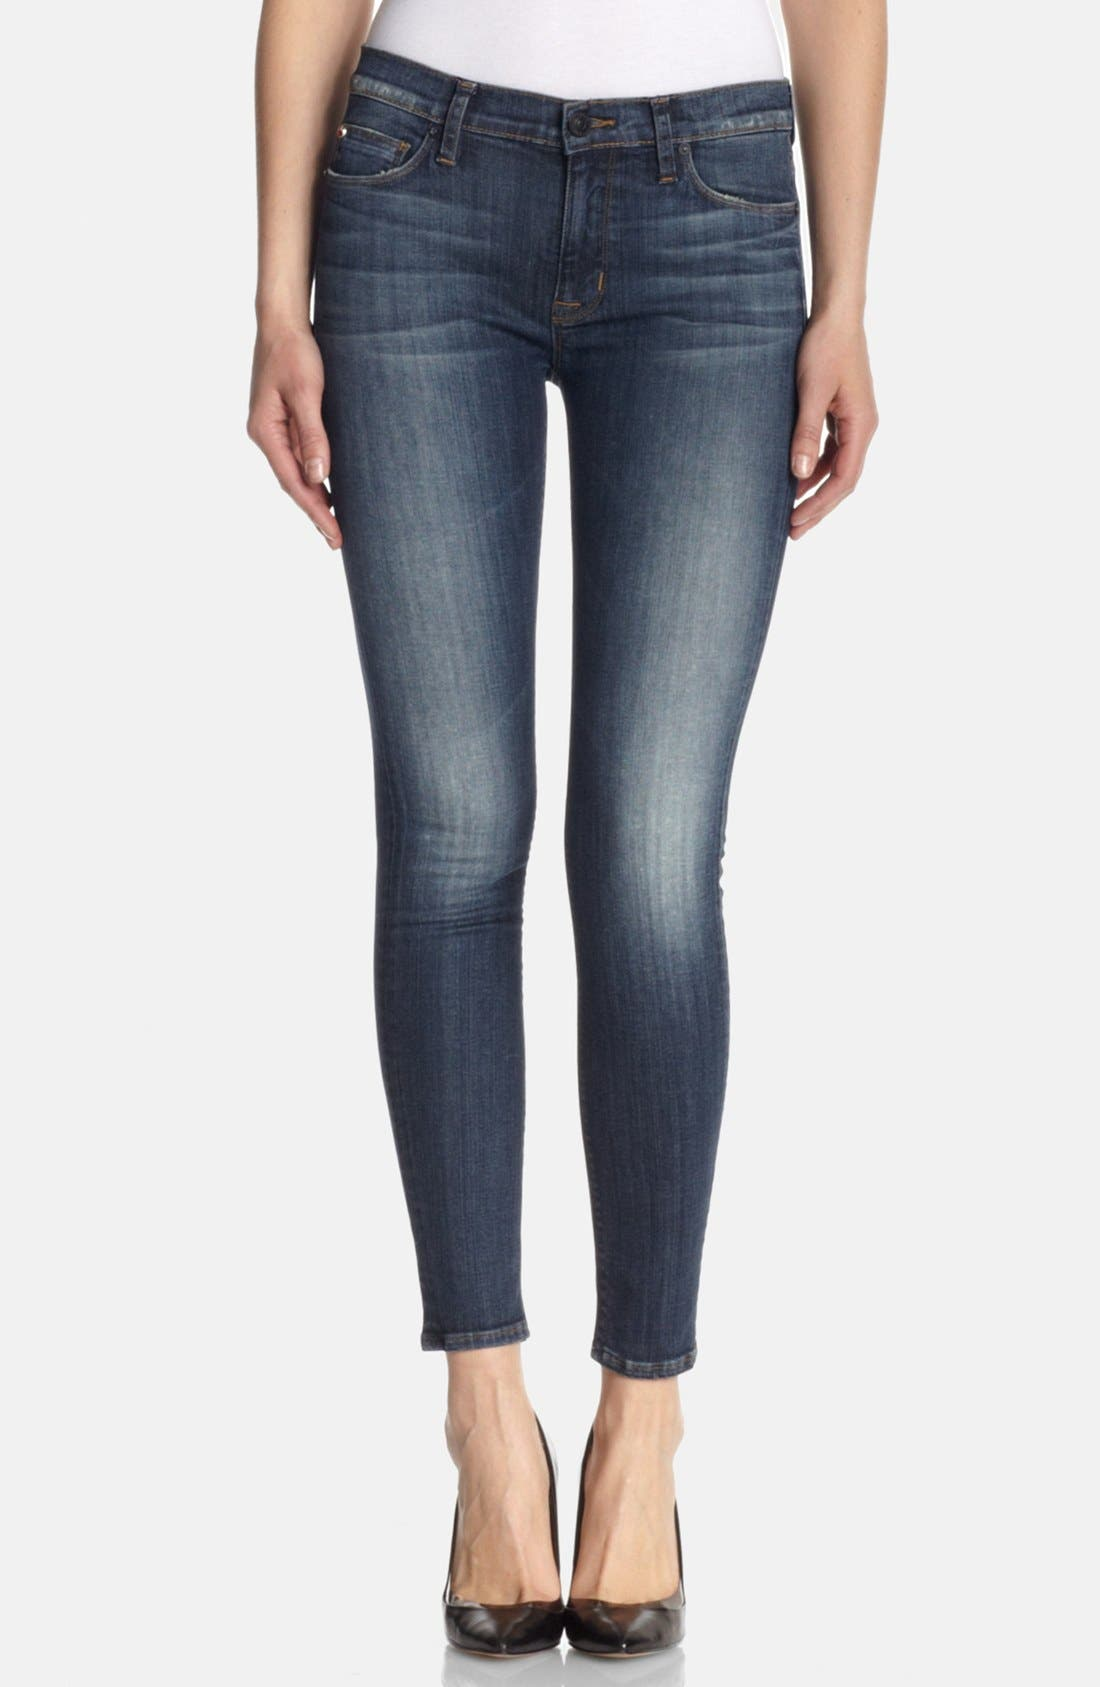 Alternate Image 1 Selected - Hudson Jeans 'Nico' Mid Rise Skinny Jeans (Glam)